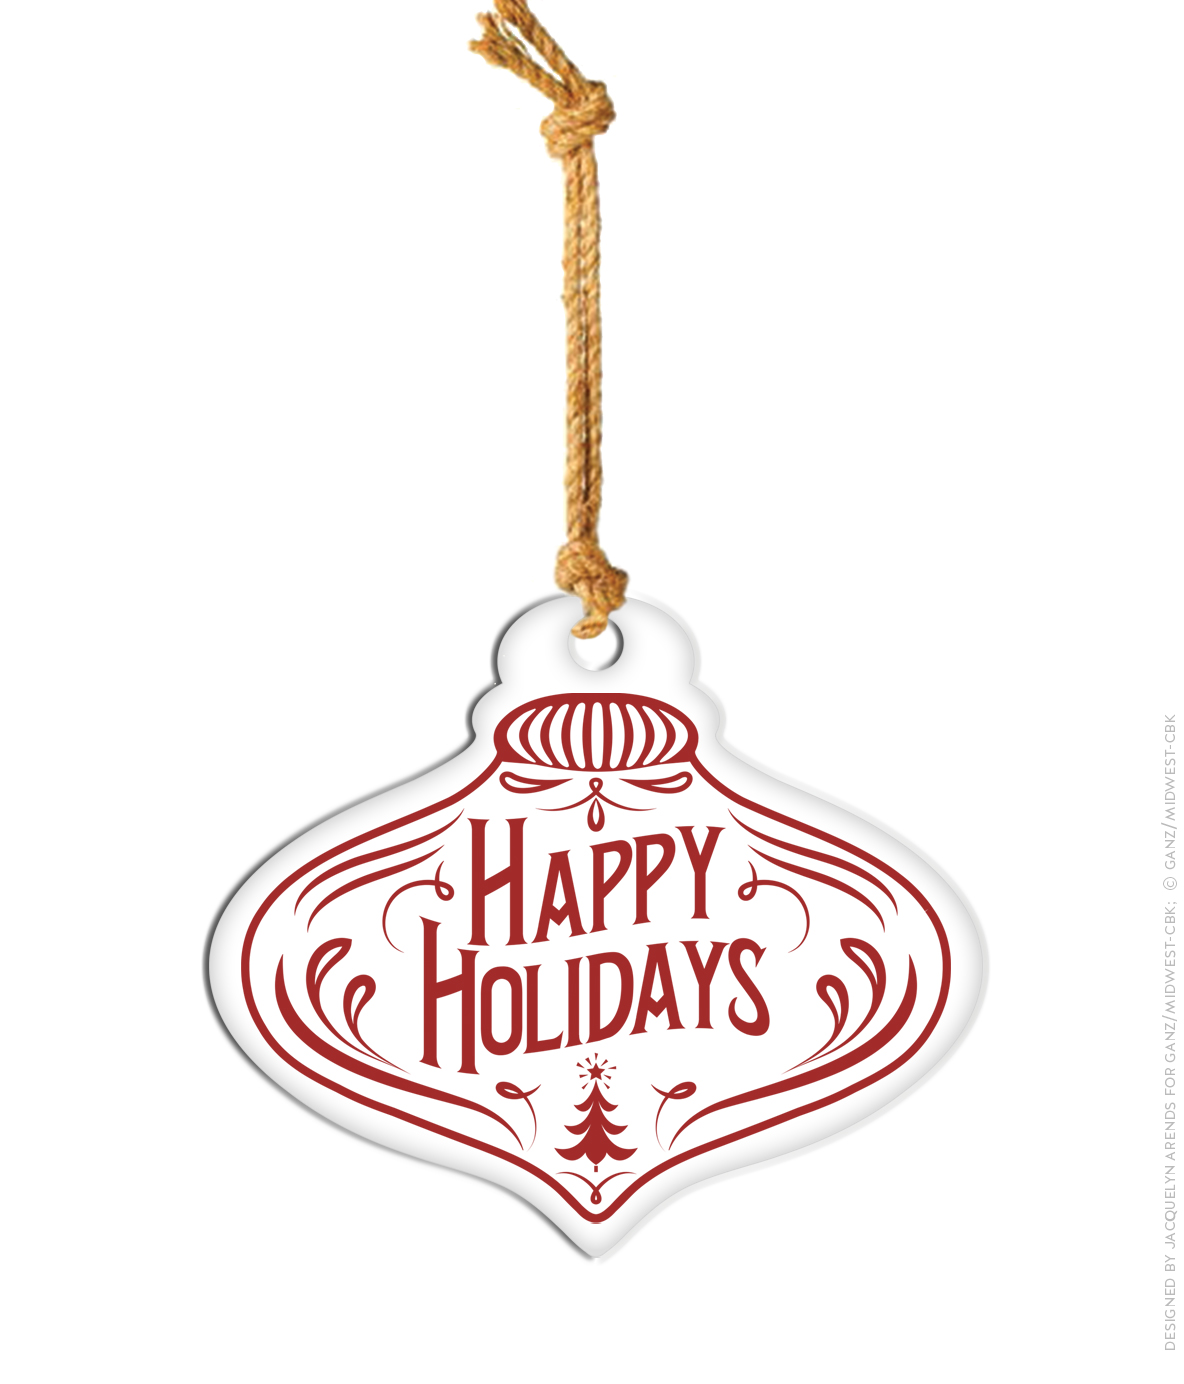 Large Enamel Hanging Ornament, Happy Holidays; © Ganz/Midwest-CBK 2019